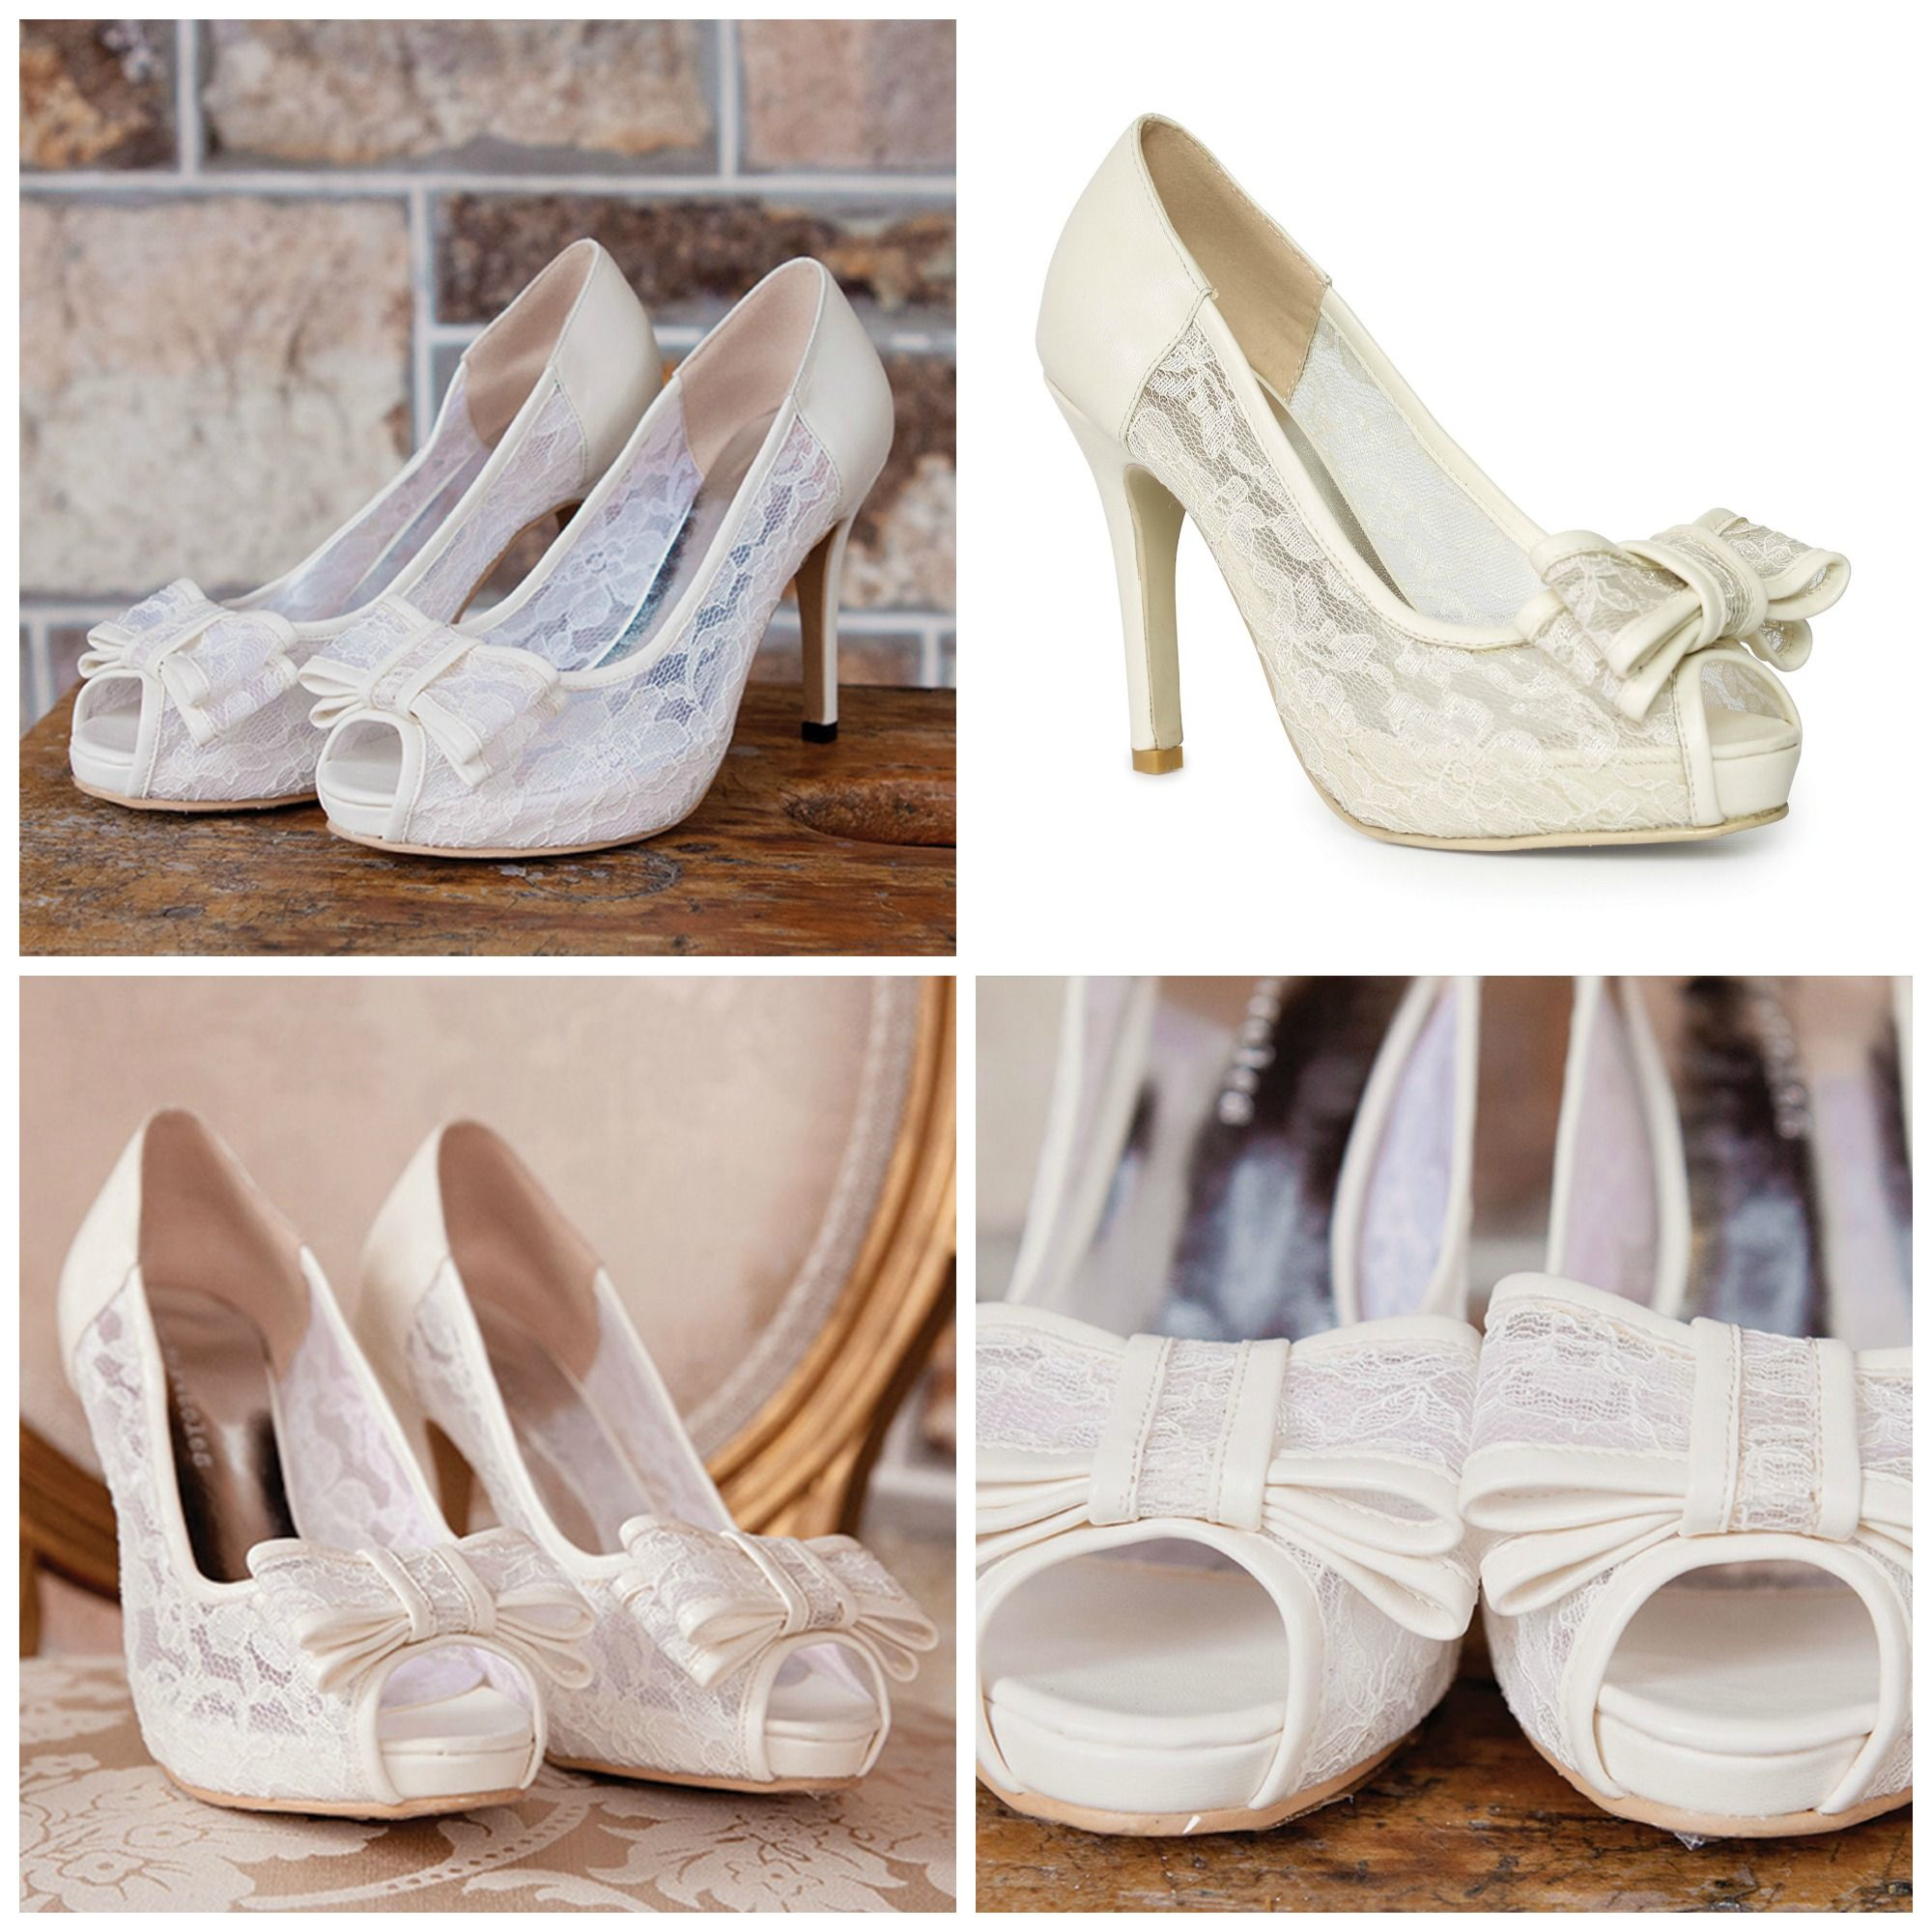 Only one pair left for the lovely At Last Ivory Peep Toe in size 7 (US)! Get this pair now at www.foreversoles.com x #weddingshoes #bridalshoes #boho #vintage